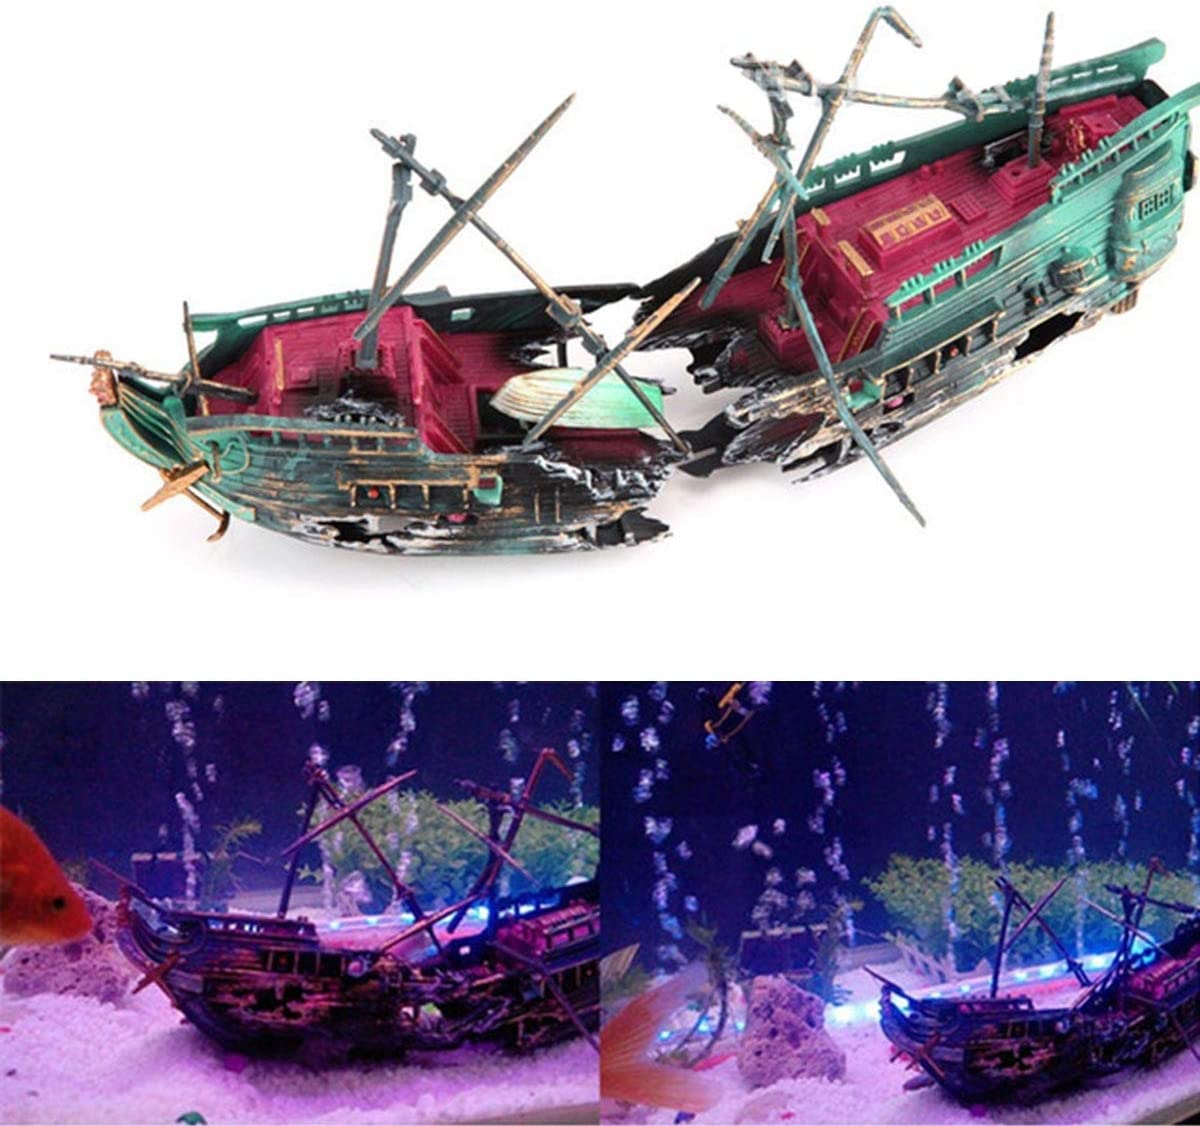 Aquarium Ornament Large Sunken Galleon Ship Wreck Air Pump Driven Action Shipwreck Decoration for Fish Tank Accessories